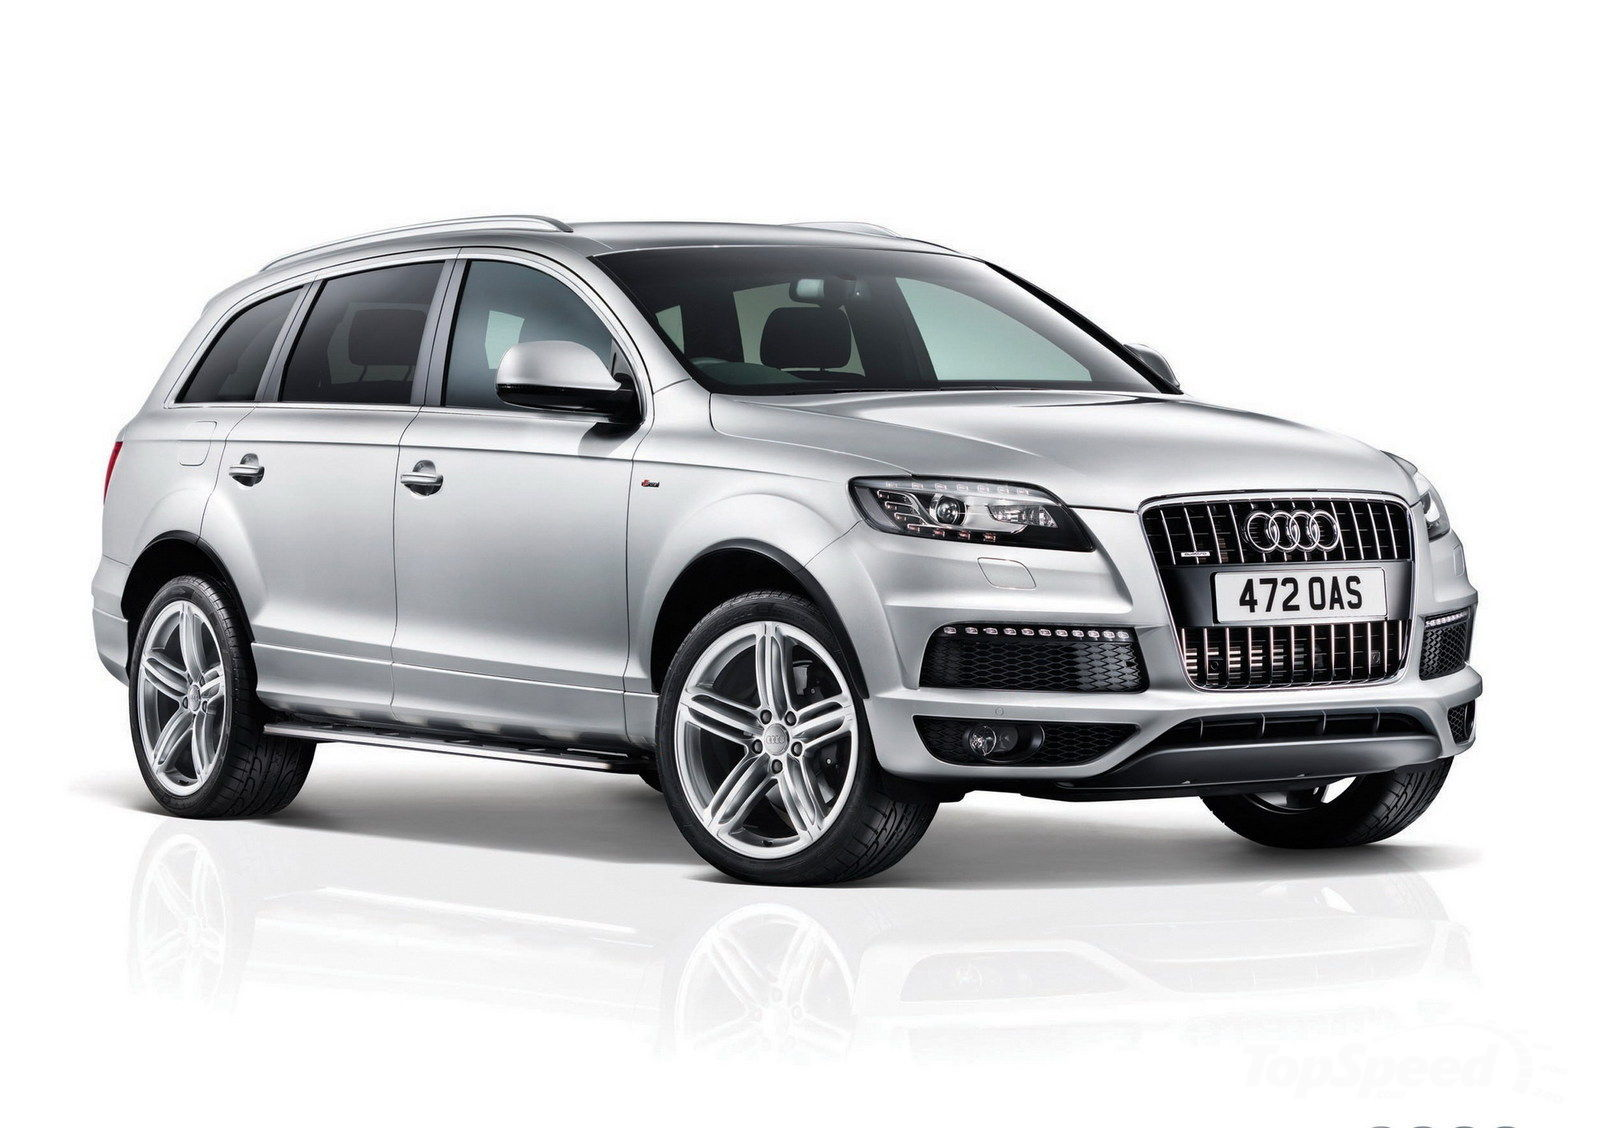 2012 audi q7 3 0 tdi s line plus review top speed. Black Bedroom Furniture Sets. Home Design Ideas